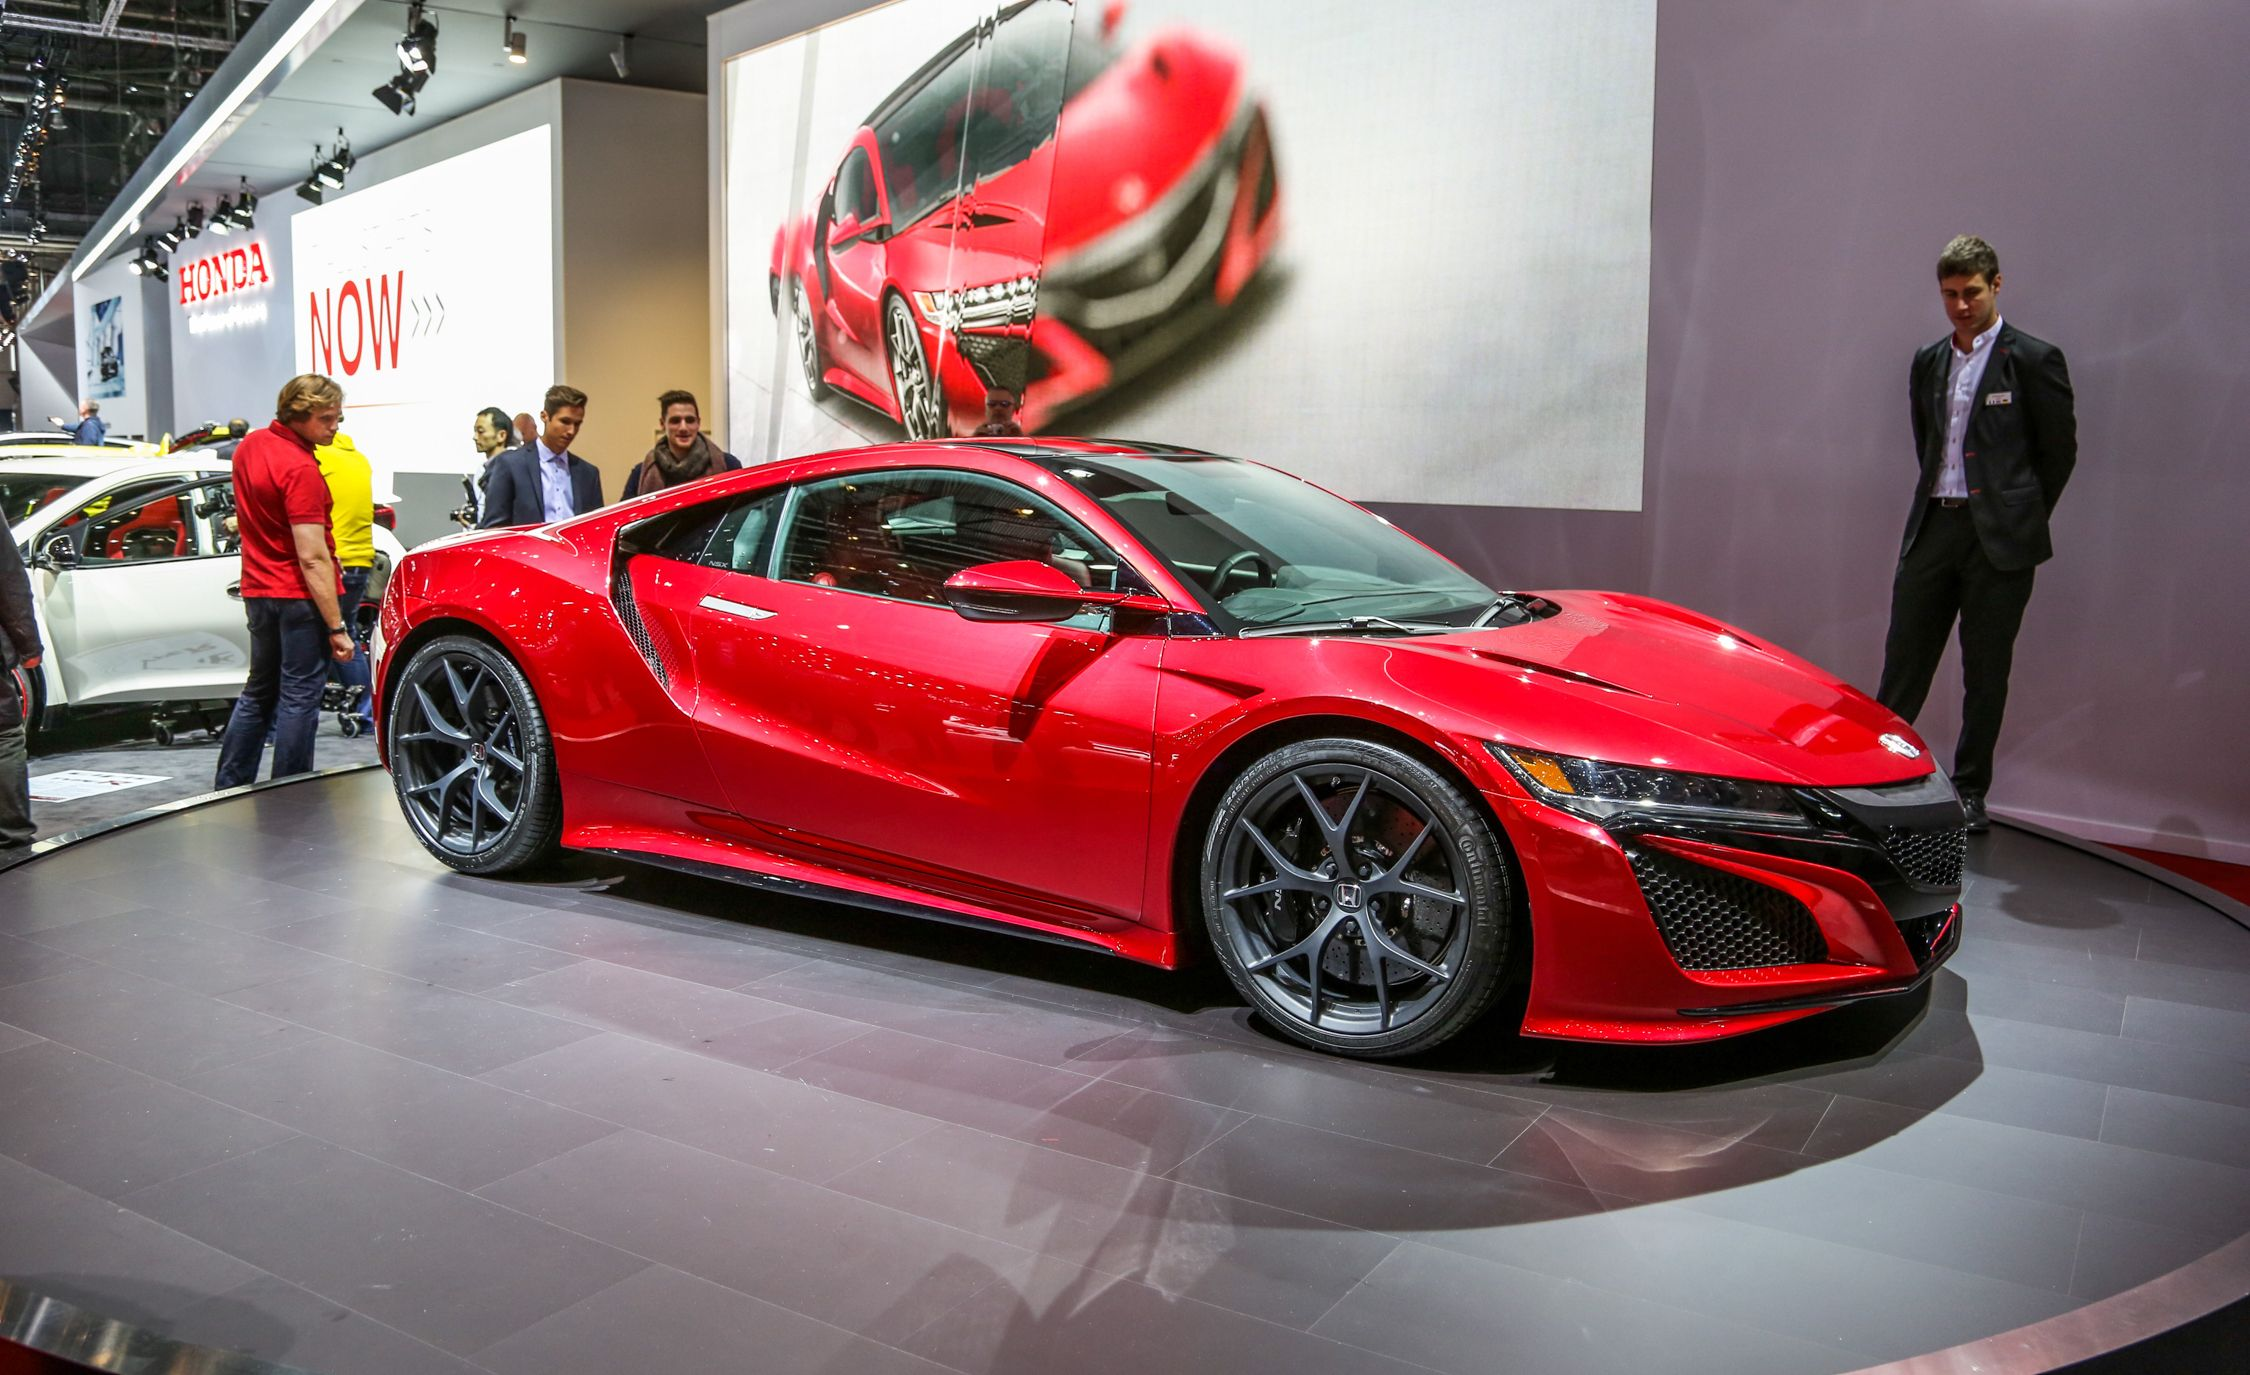 Acura Nsx With Honda Badges Unveiled For Europe News Car